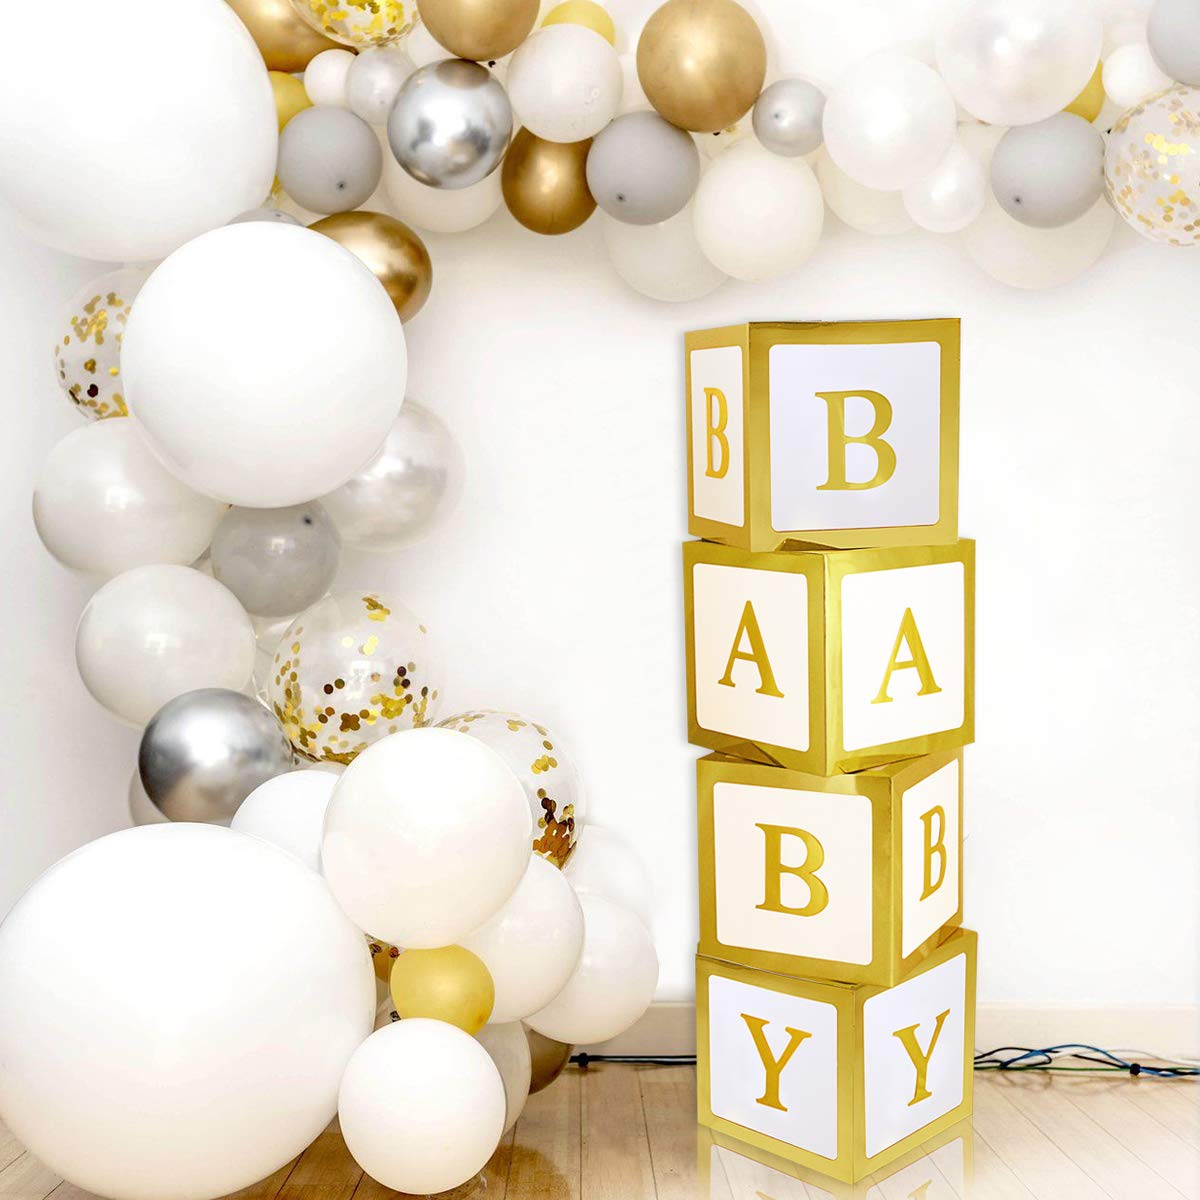 Baby Shower Decorations Gold Large Baby Box Baby Blocks Decorations for Baby Shower Boy Girl 1st Birthday Party Decorations by QIFU by QIFU